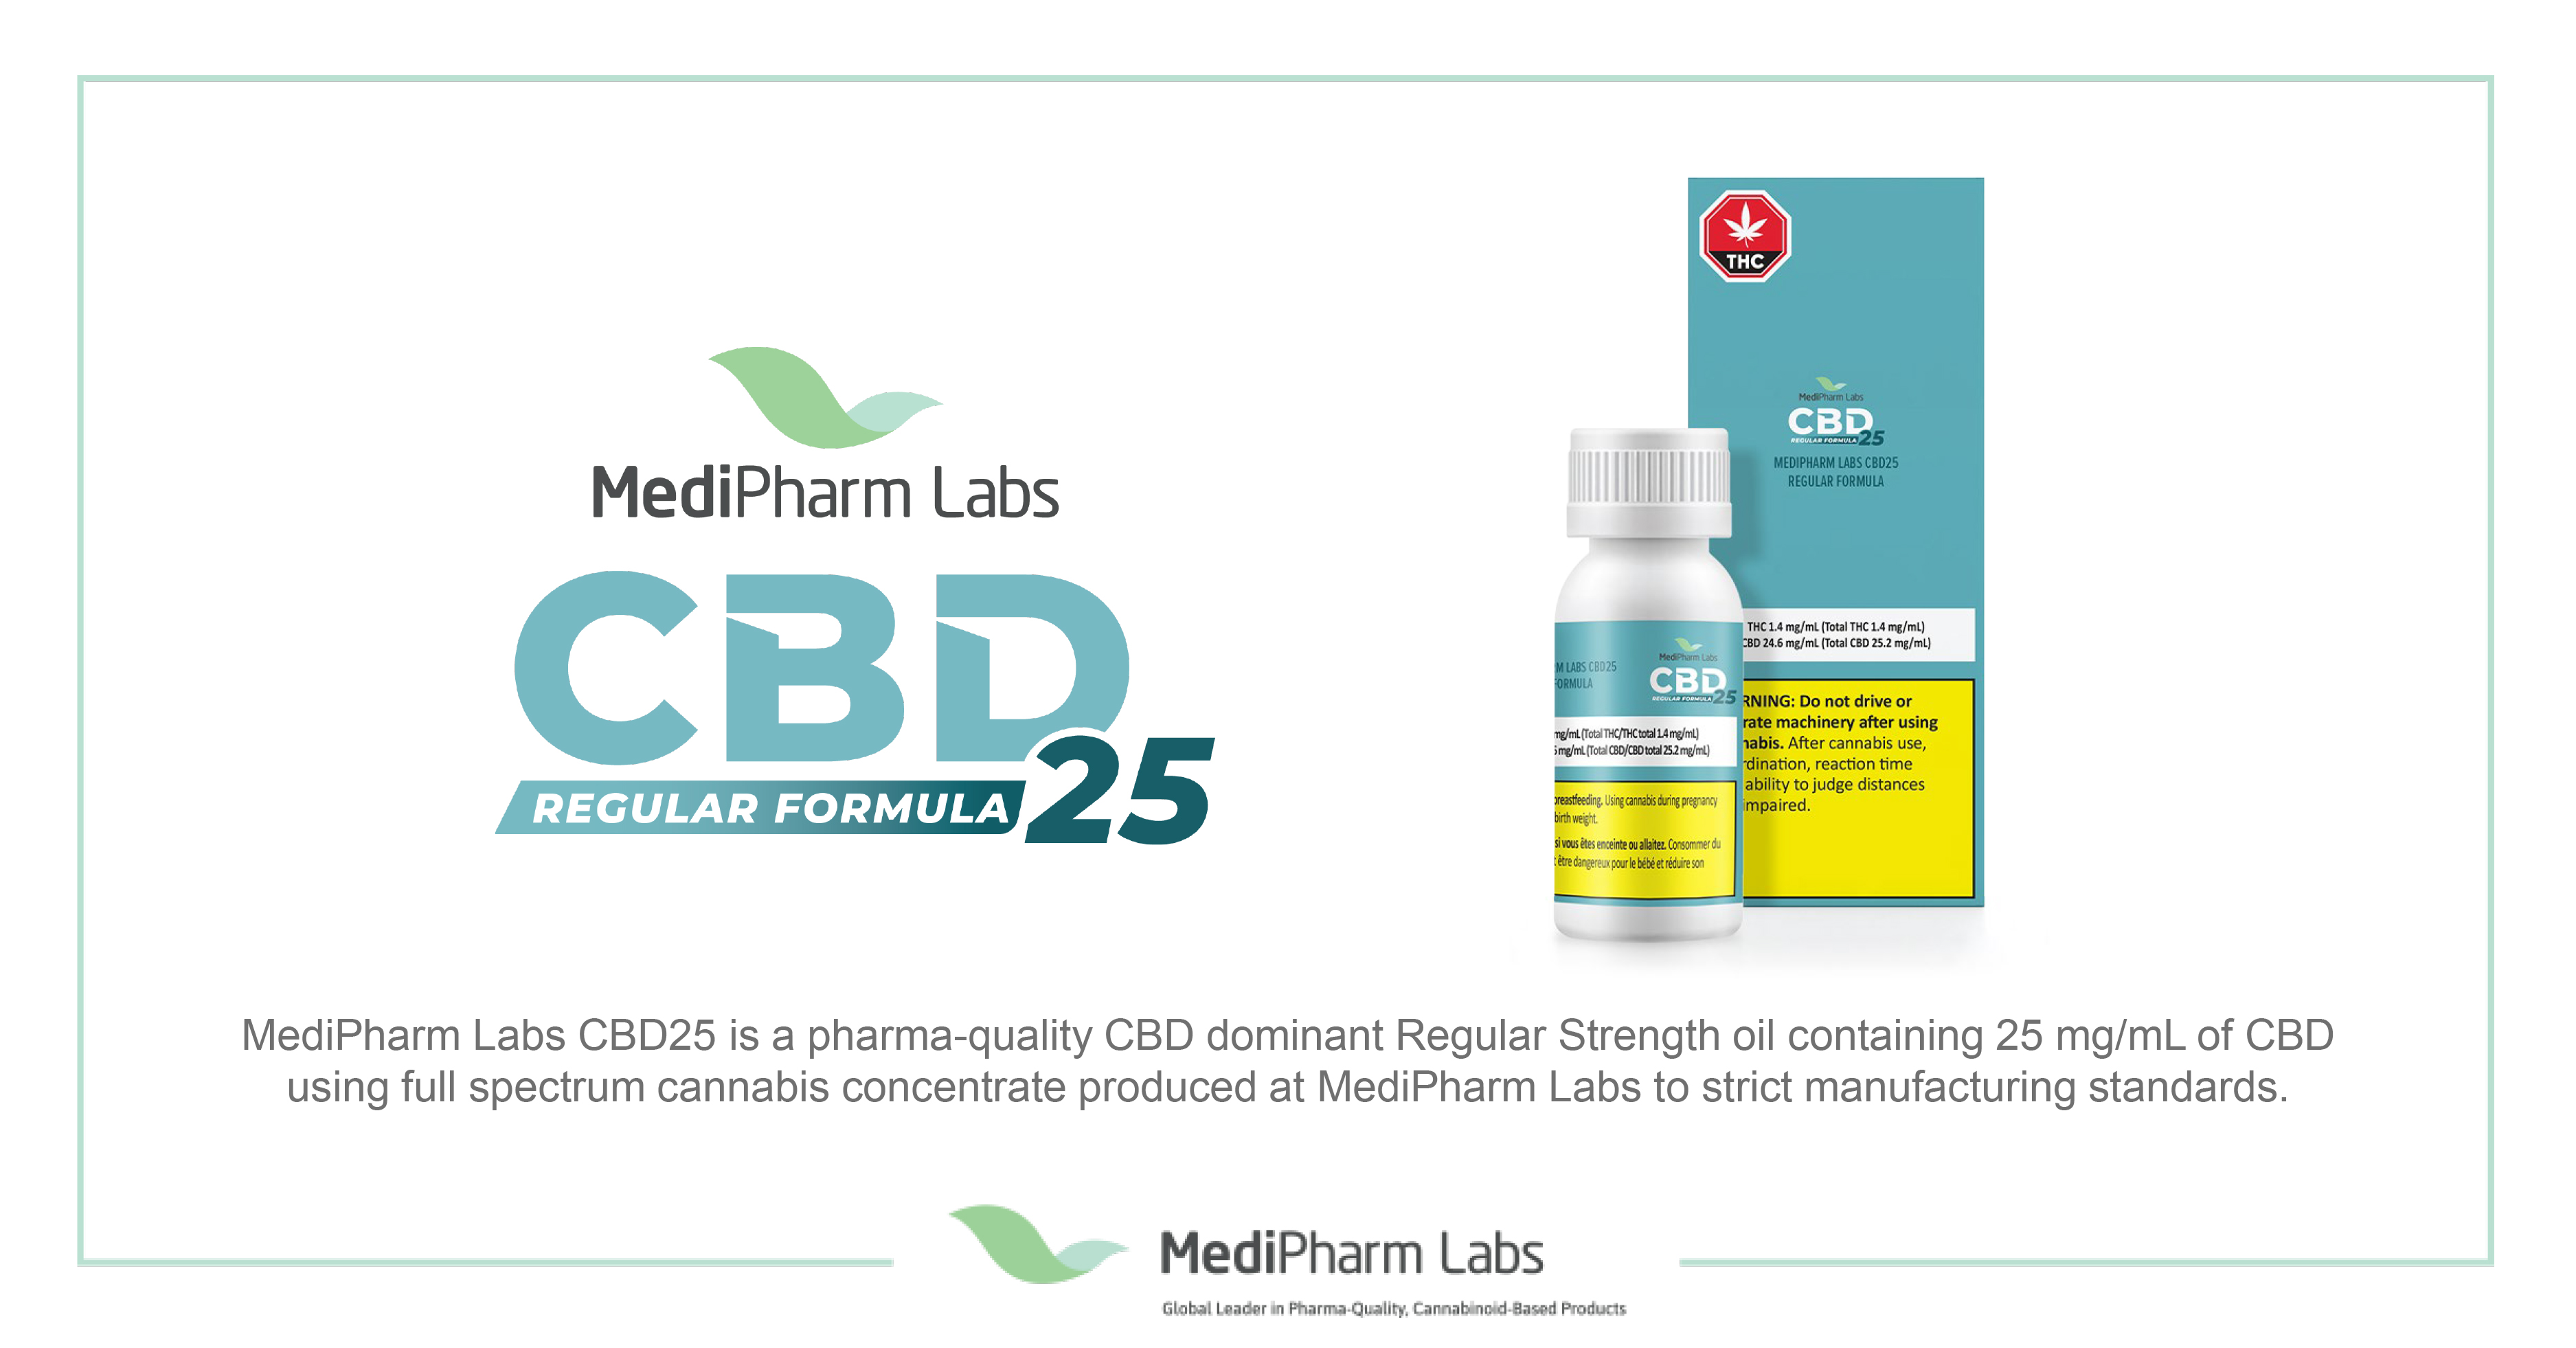 MediPharm Labs Launches New Line of High-Quality Branded Products Across Canada